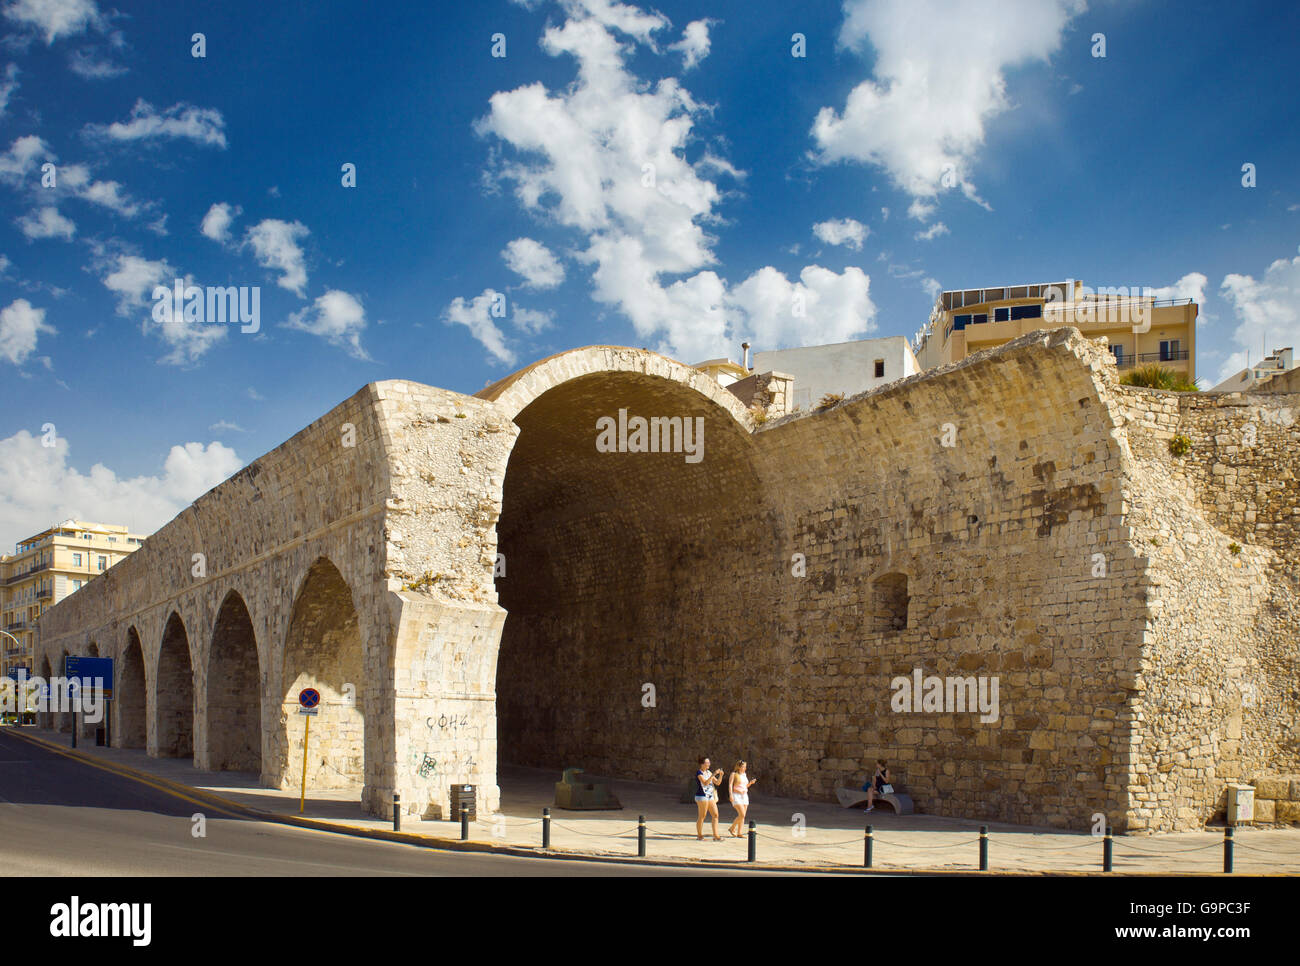 Remains of the Venetian shipyards or Arsenals in Heraklion, Crete. - Stock Image